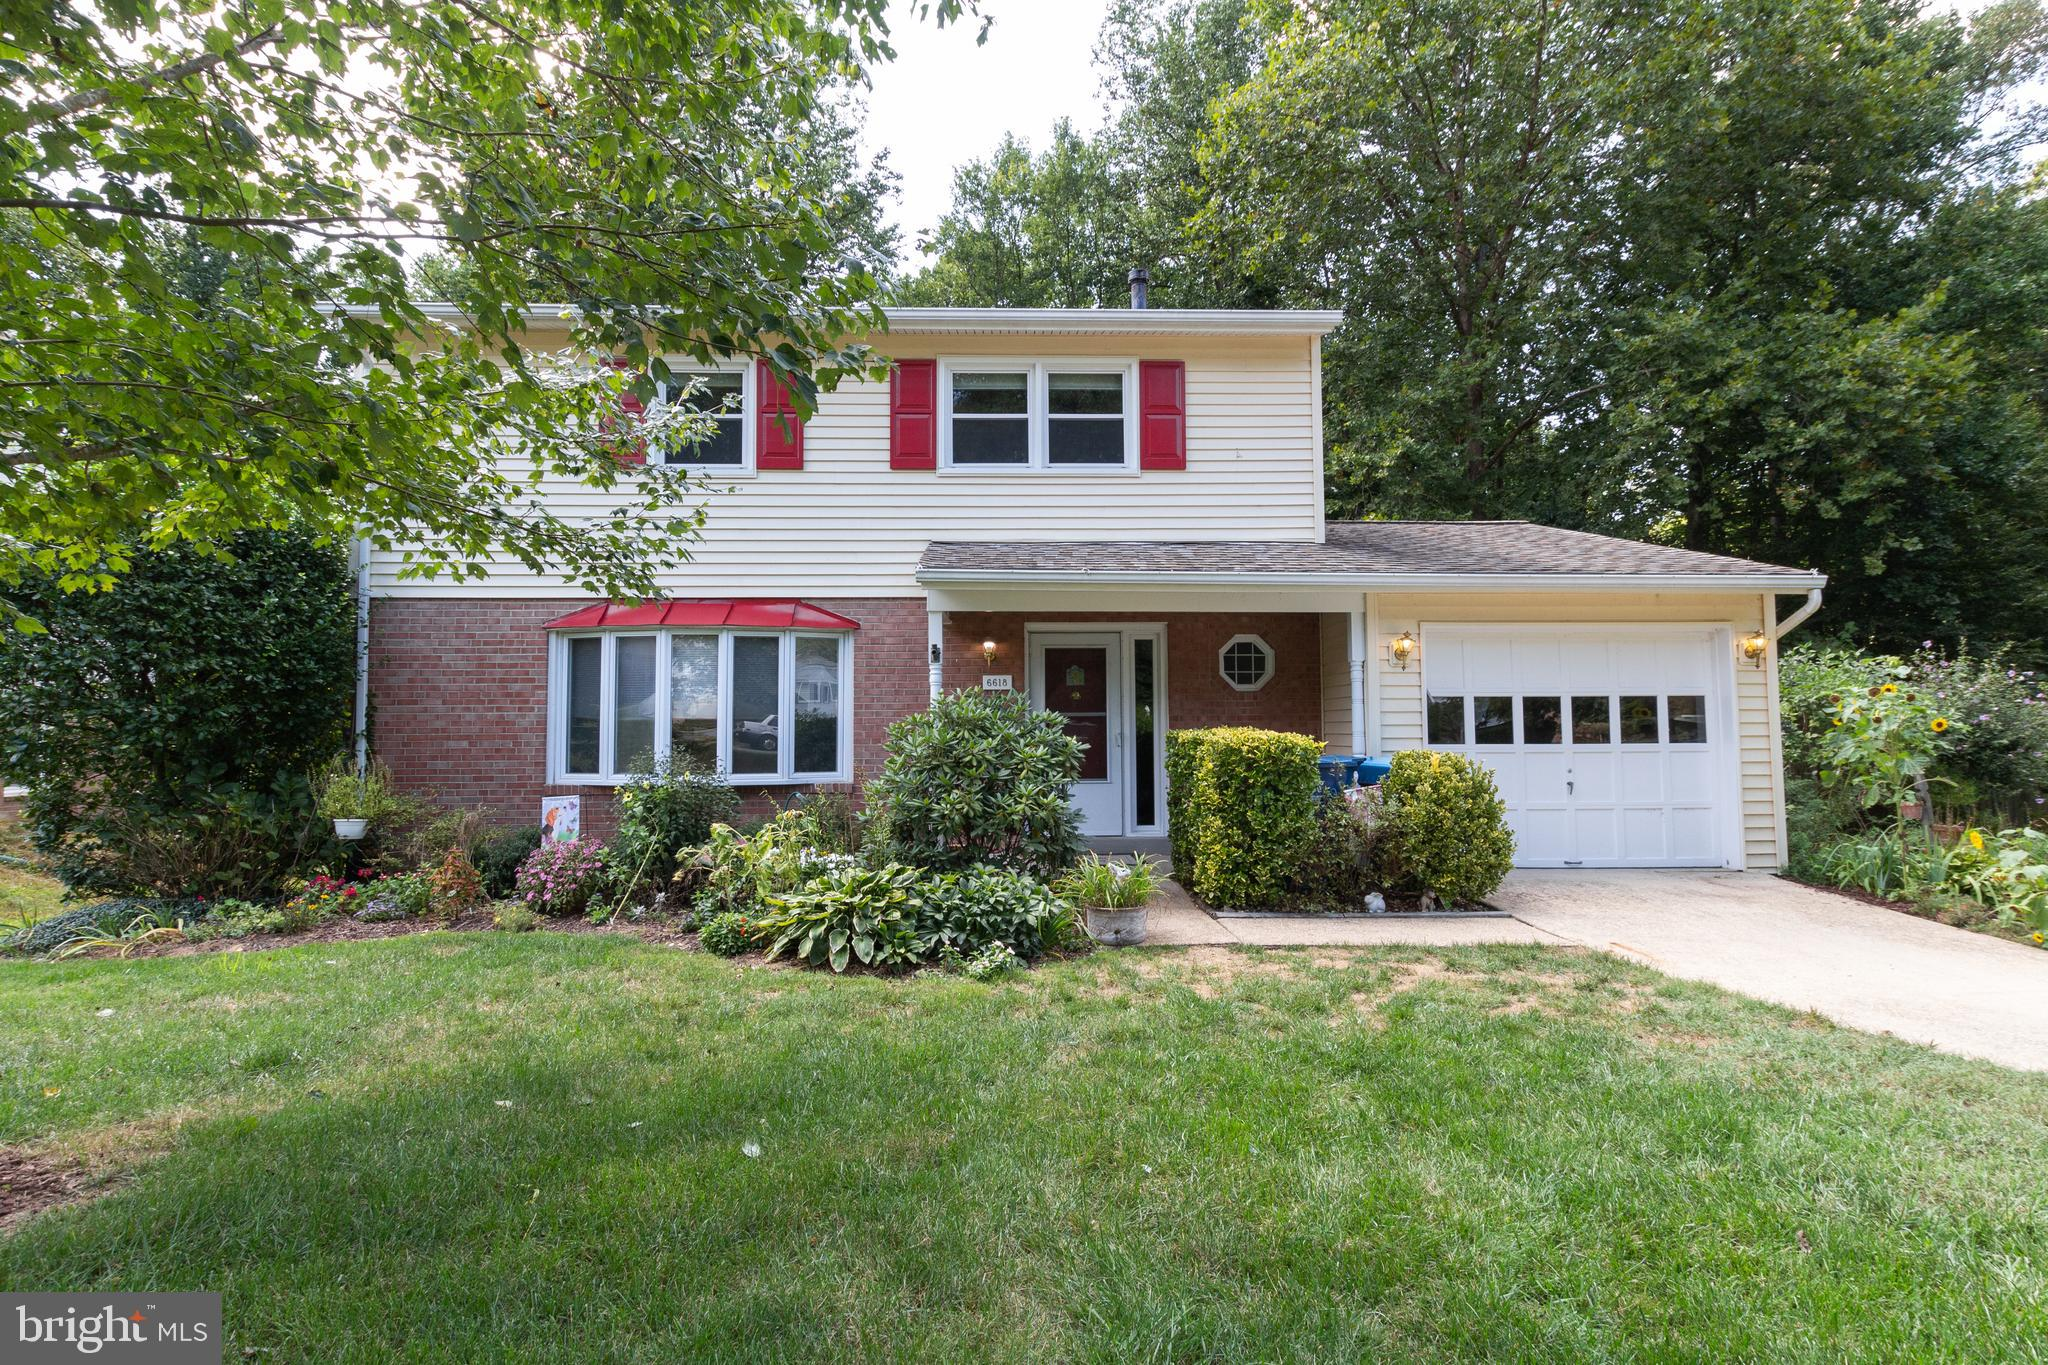 Welcome to 6618 Holford Lane, a beautiful home offering 4 bedroom, 2.55 bath with hardwoods on main & upper levels!  Not only does your spacious patio and large fenced backyard back to parkland, but you will spends hours in your gorgeous sunroom.  For convenience, your one car-garage leads directly into the kitchen next to your main level laundry room. With a large sunlight living room, a charming dining room and roomy kitchen, the crew can spread out on this main level or wander down to the oversized finished basement containing an updated half bath, new flooring and walkout level access.  Upstairs you will note the addition of the professionally designed walk-in closet and two updated bathrooms.  Direct access to Fairfax County Parkway, Franconia-Springfield Parkway, I-95, I-395, and I-495.